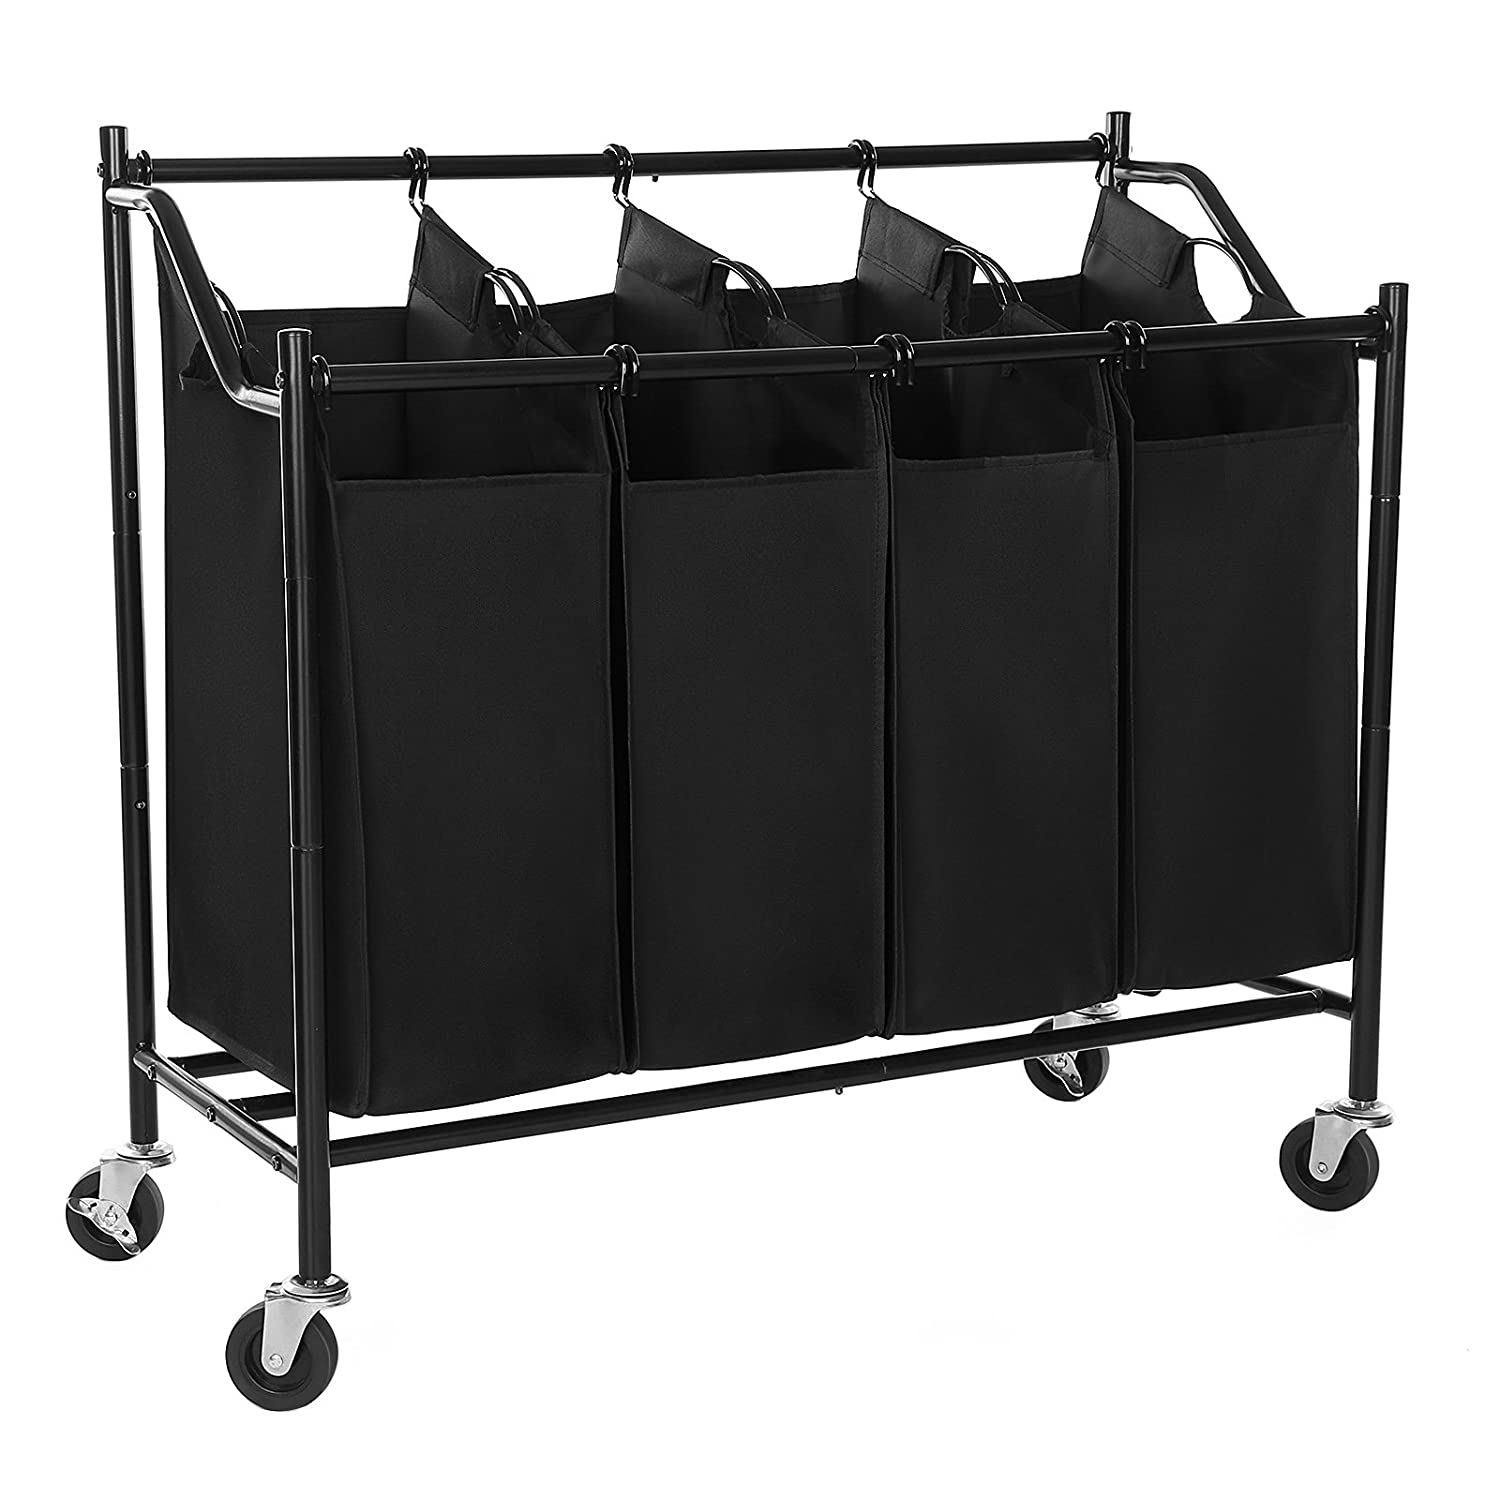 SONGMICS Heavy-Duty 4-Bag Rolling Laundry Sorter Storage Cart with Wheels Black URLS90H